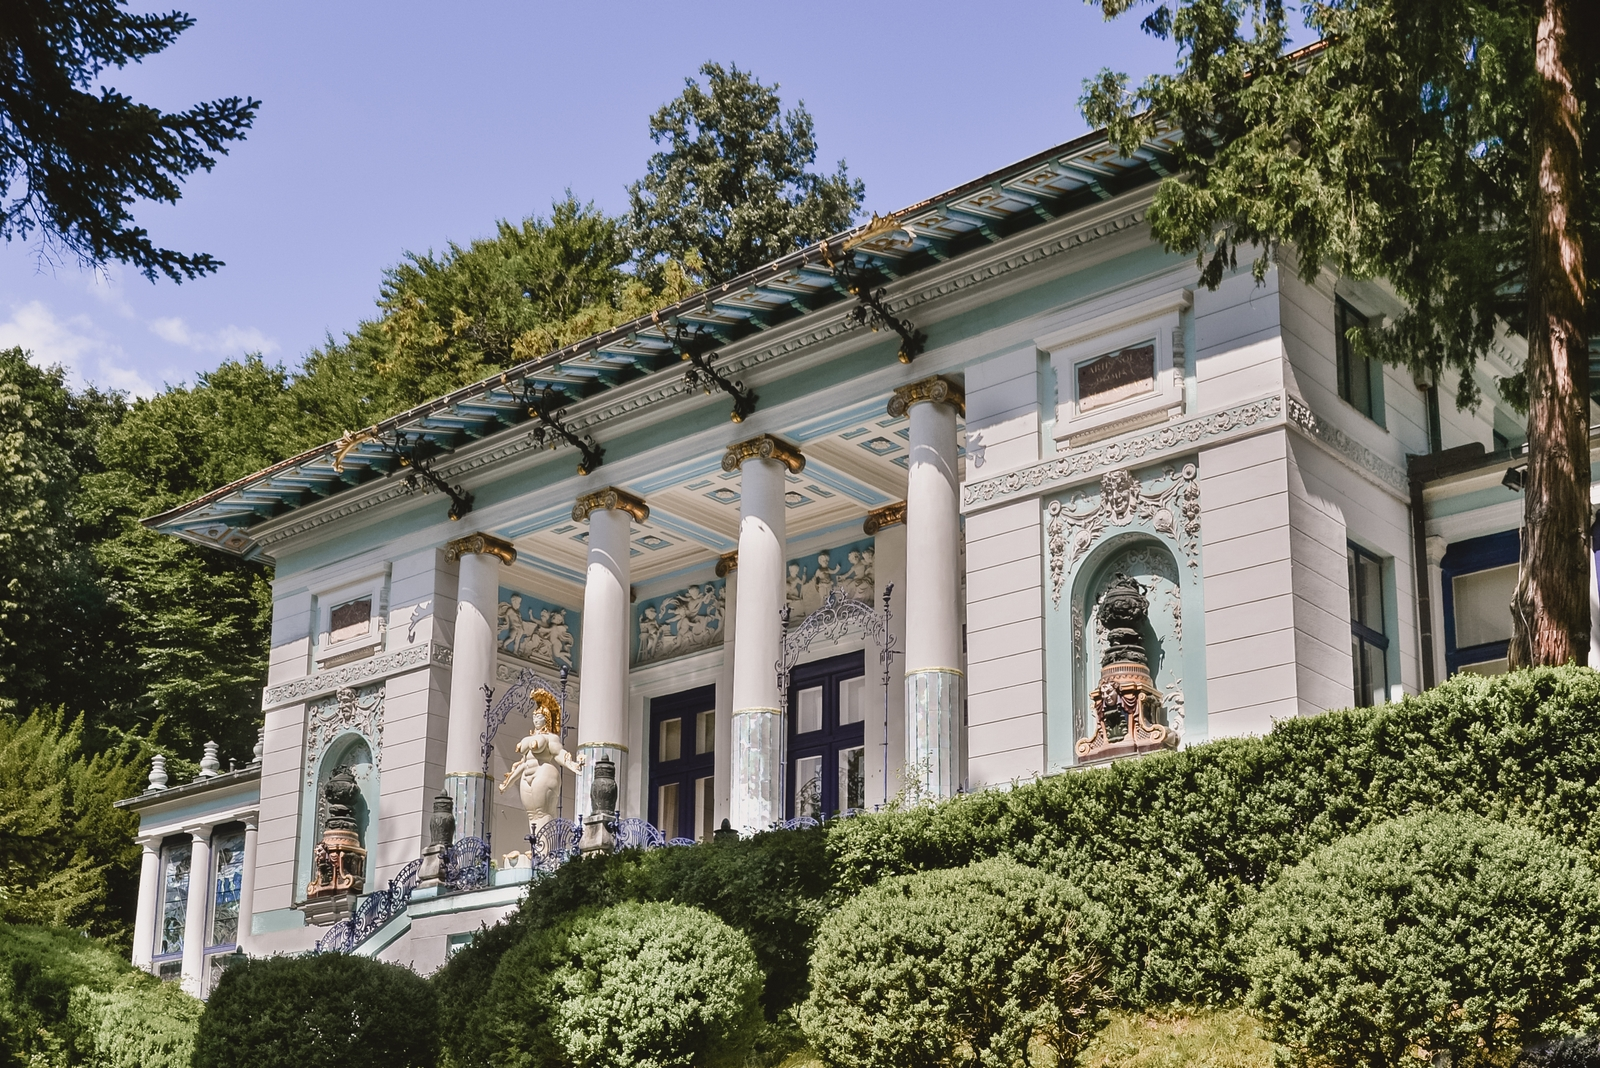 Villa Wagner I, one of the top 10 strangest buildings in Vienna - from travel blog: http:/Epepa.eu